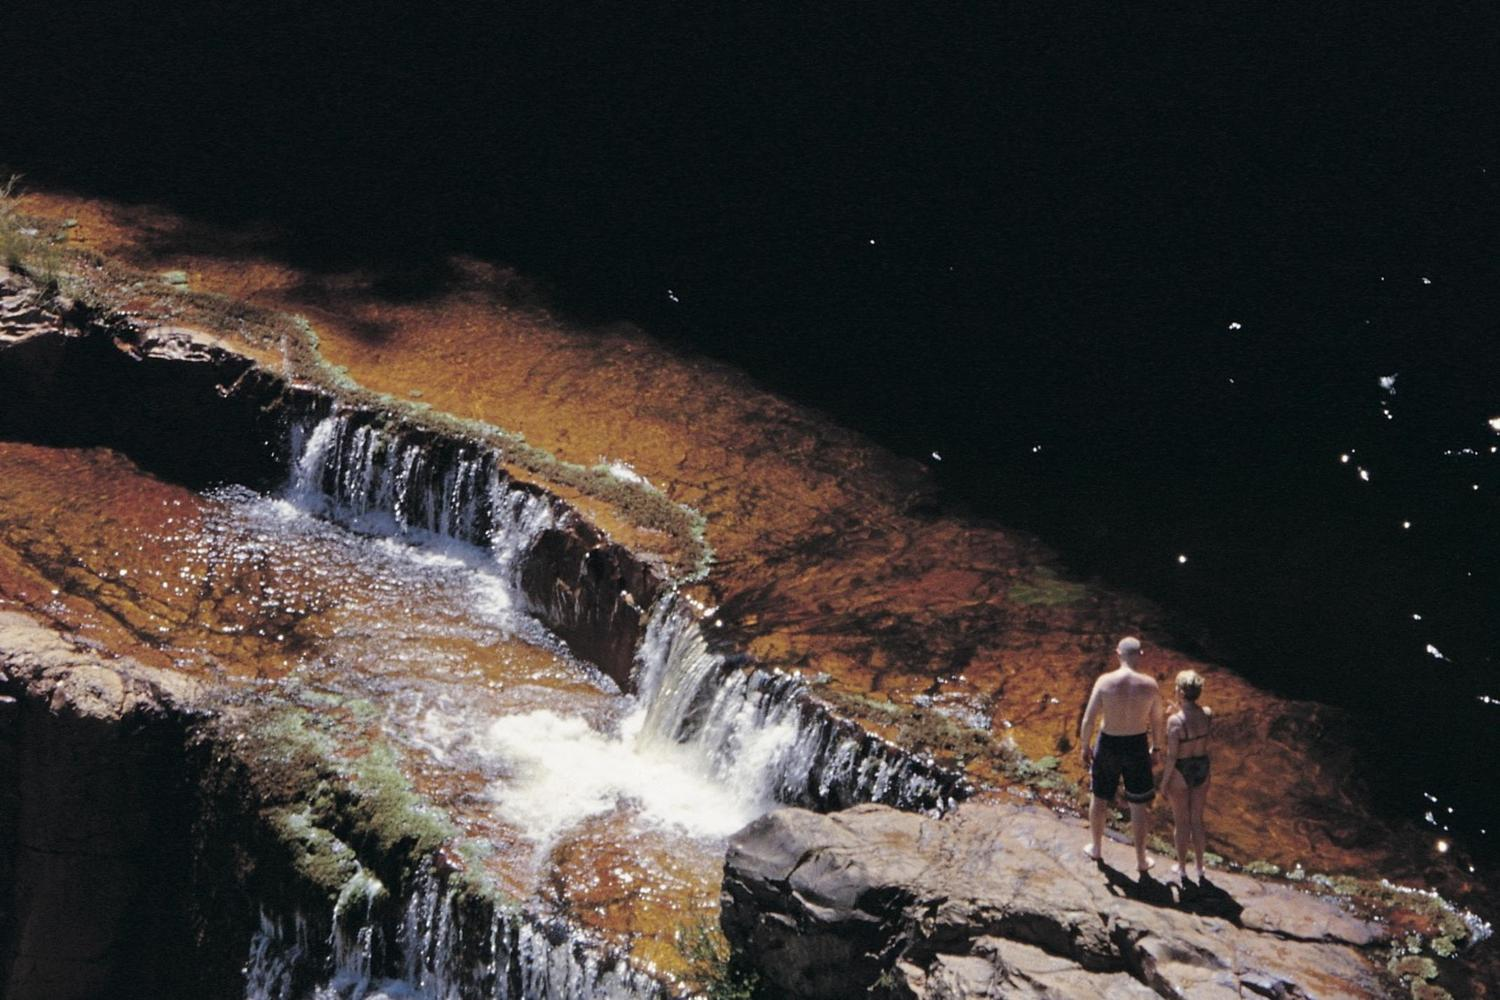 The Devil's waterfall in the Chapada Diamantina